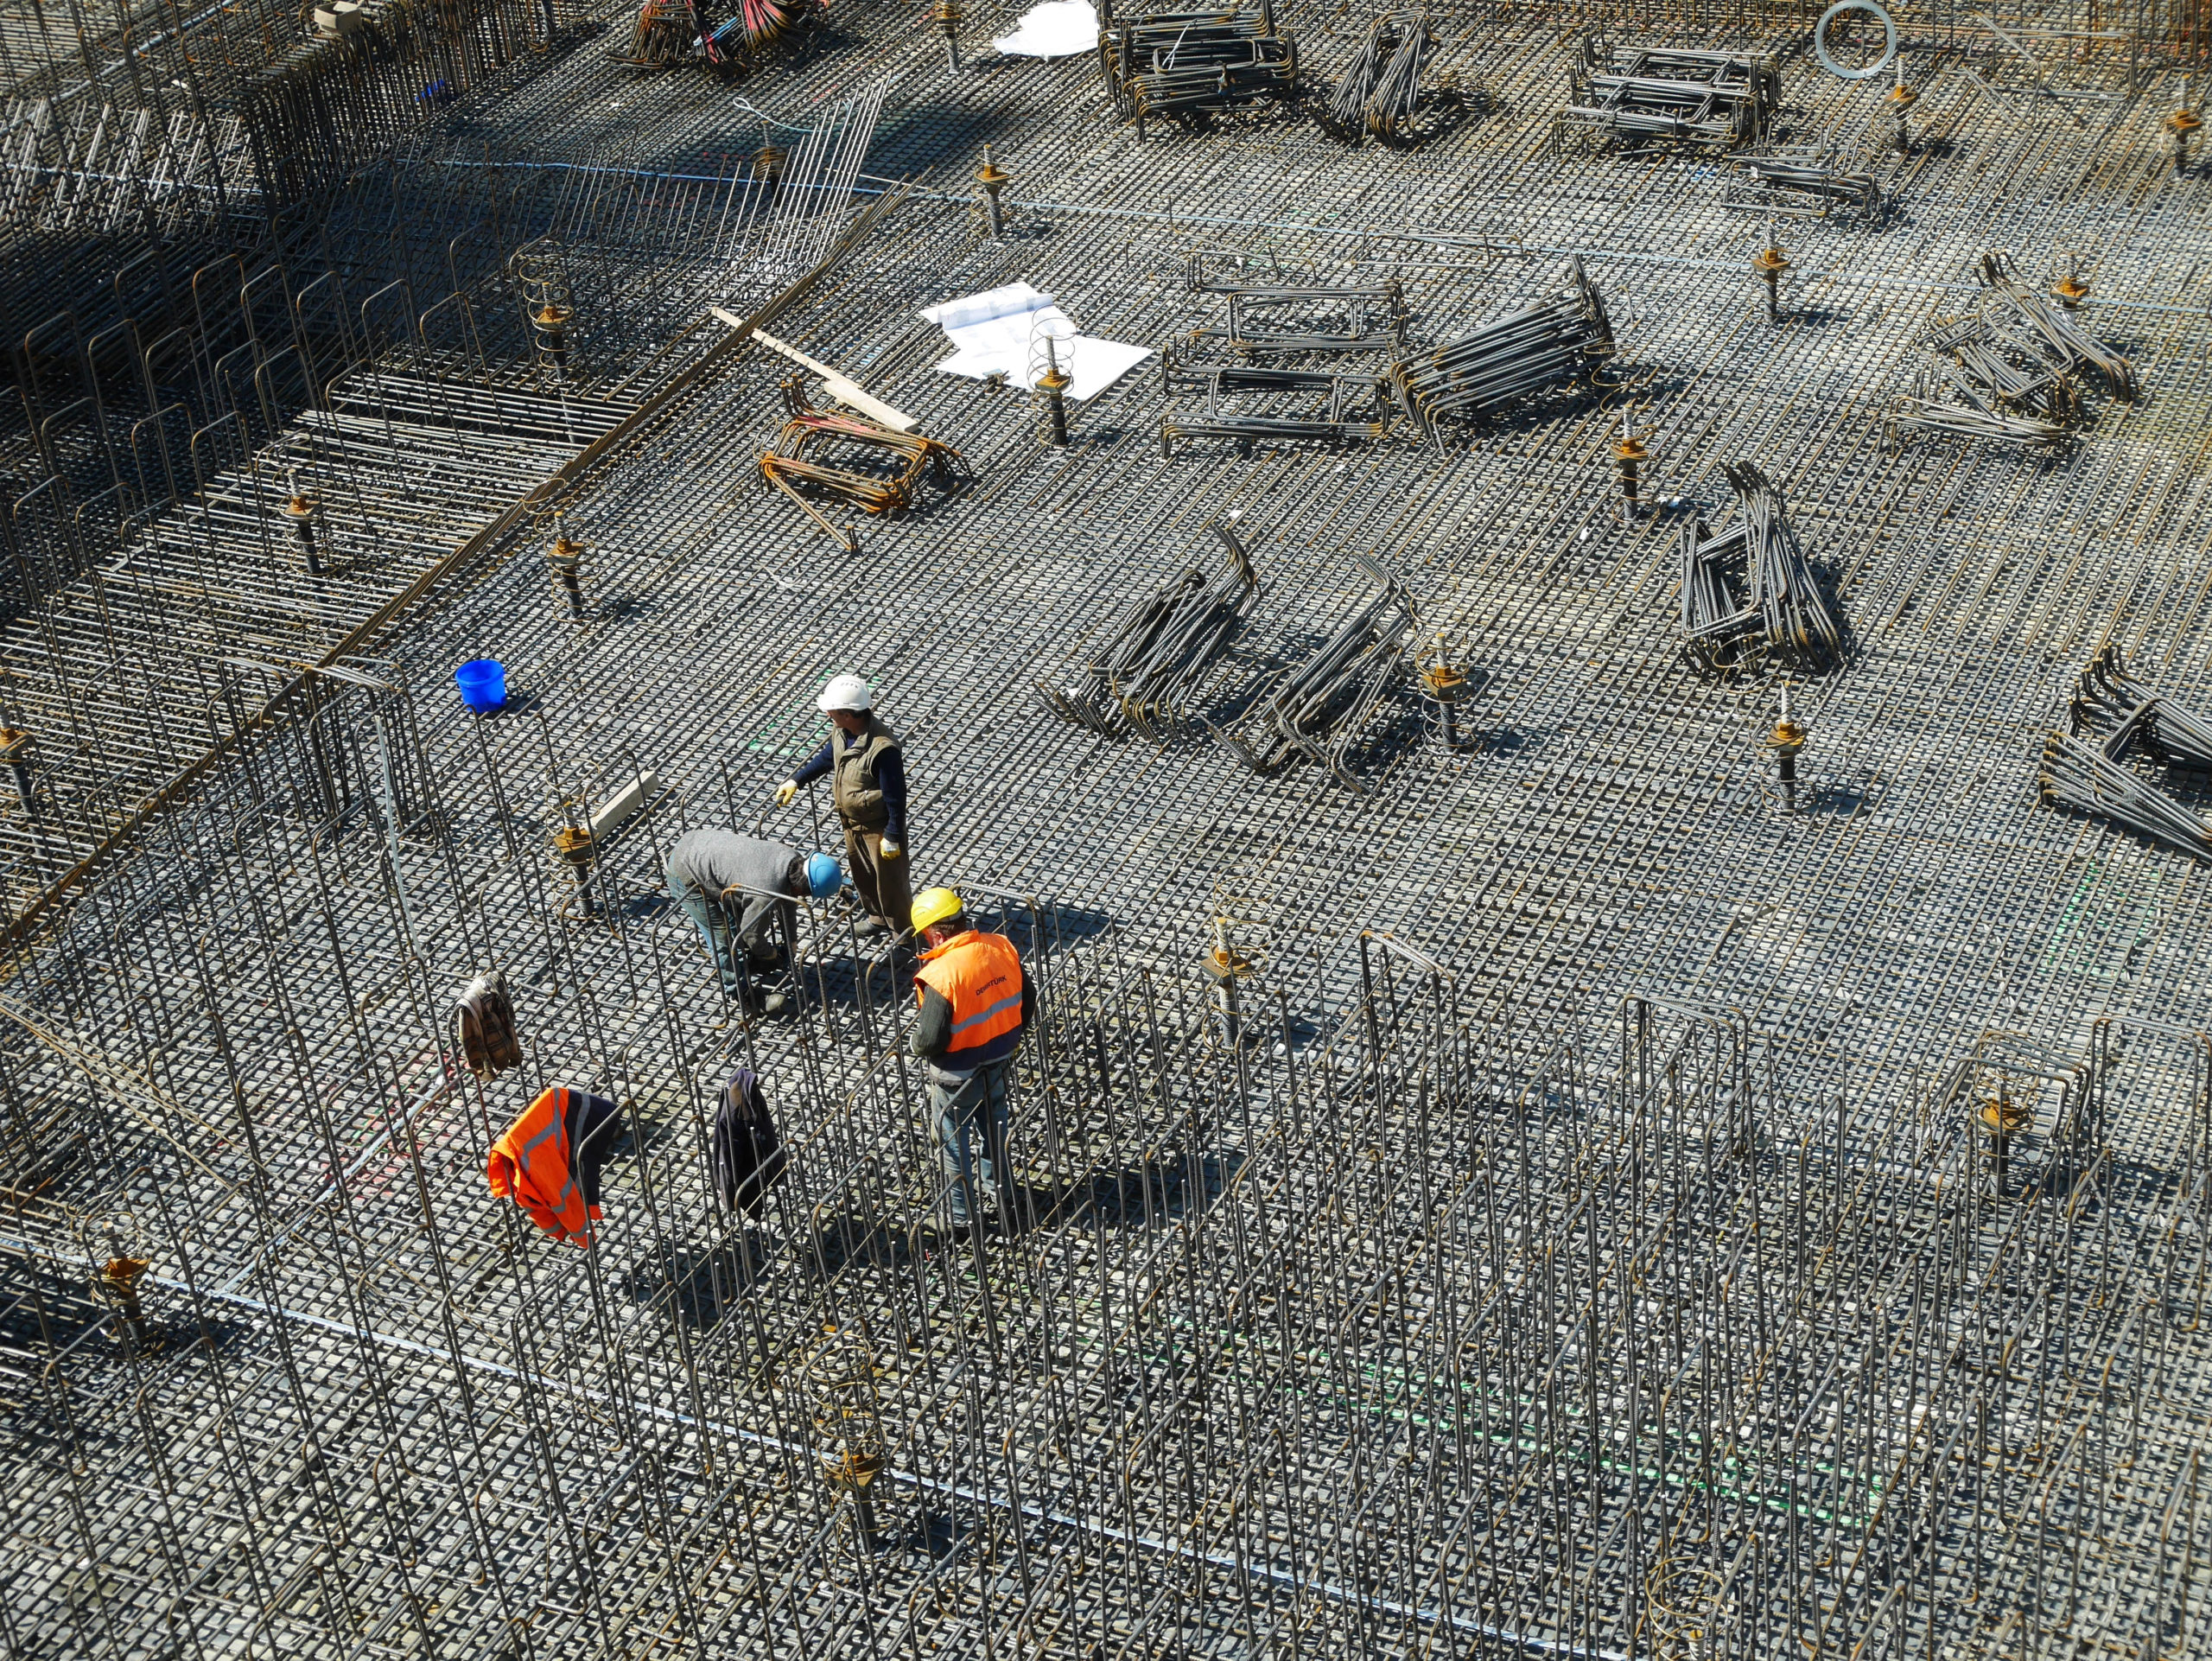 steel rebar placement for new structural concrete slab and flatwork